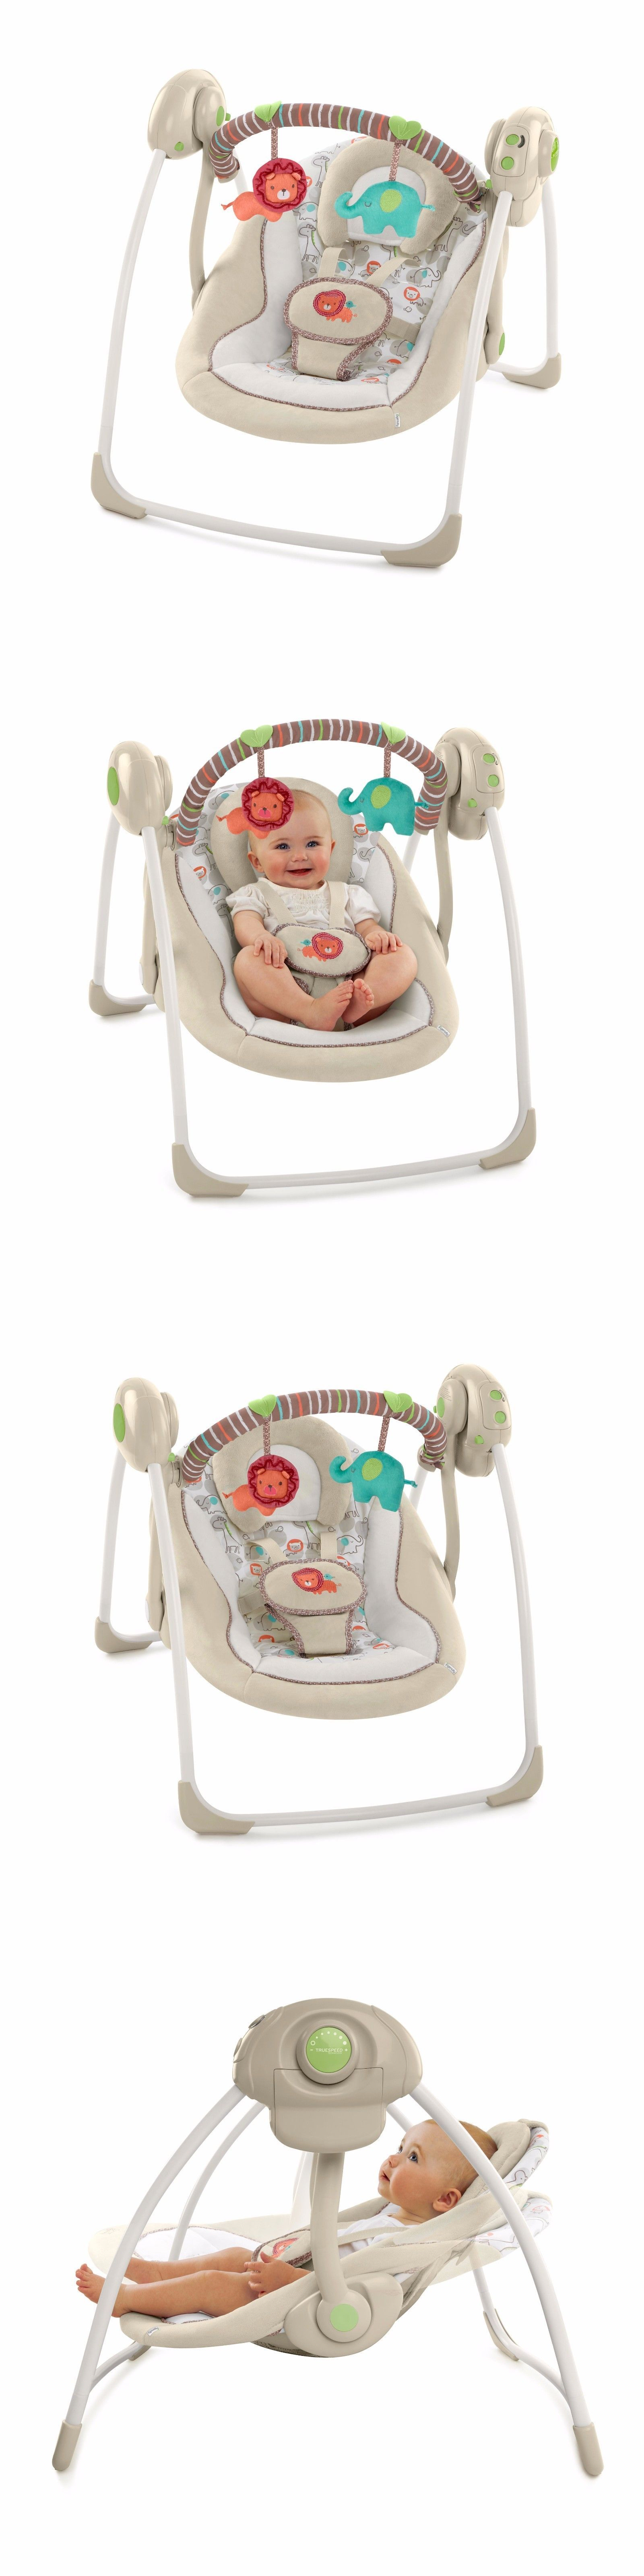 Bouncers and Vibrating Chairs Baby Portable Swing Infant